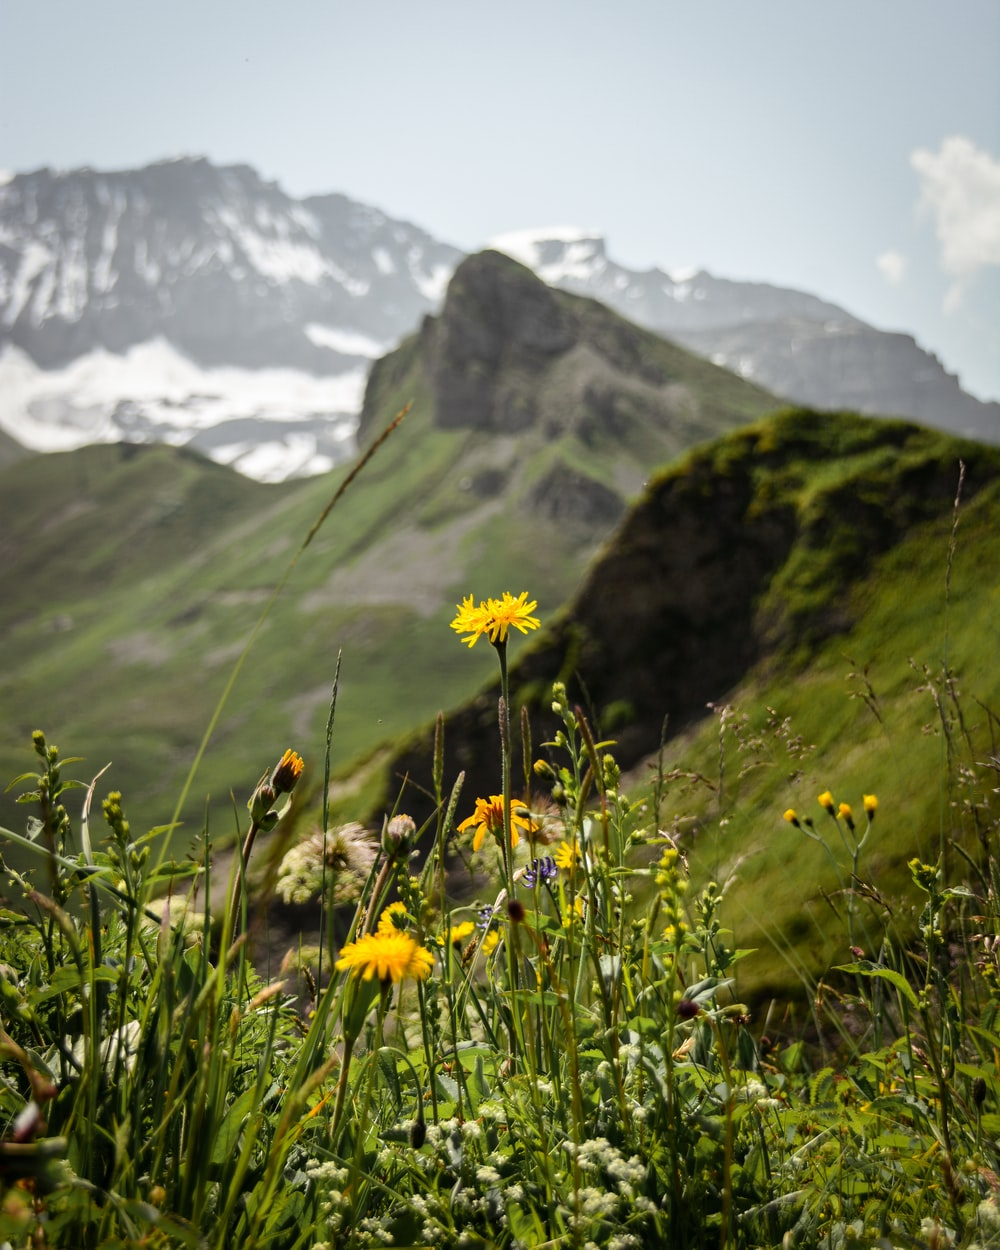 yellow flowers on green grass field near mountain during daytime